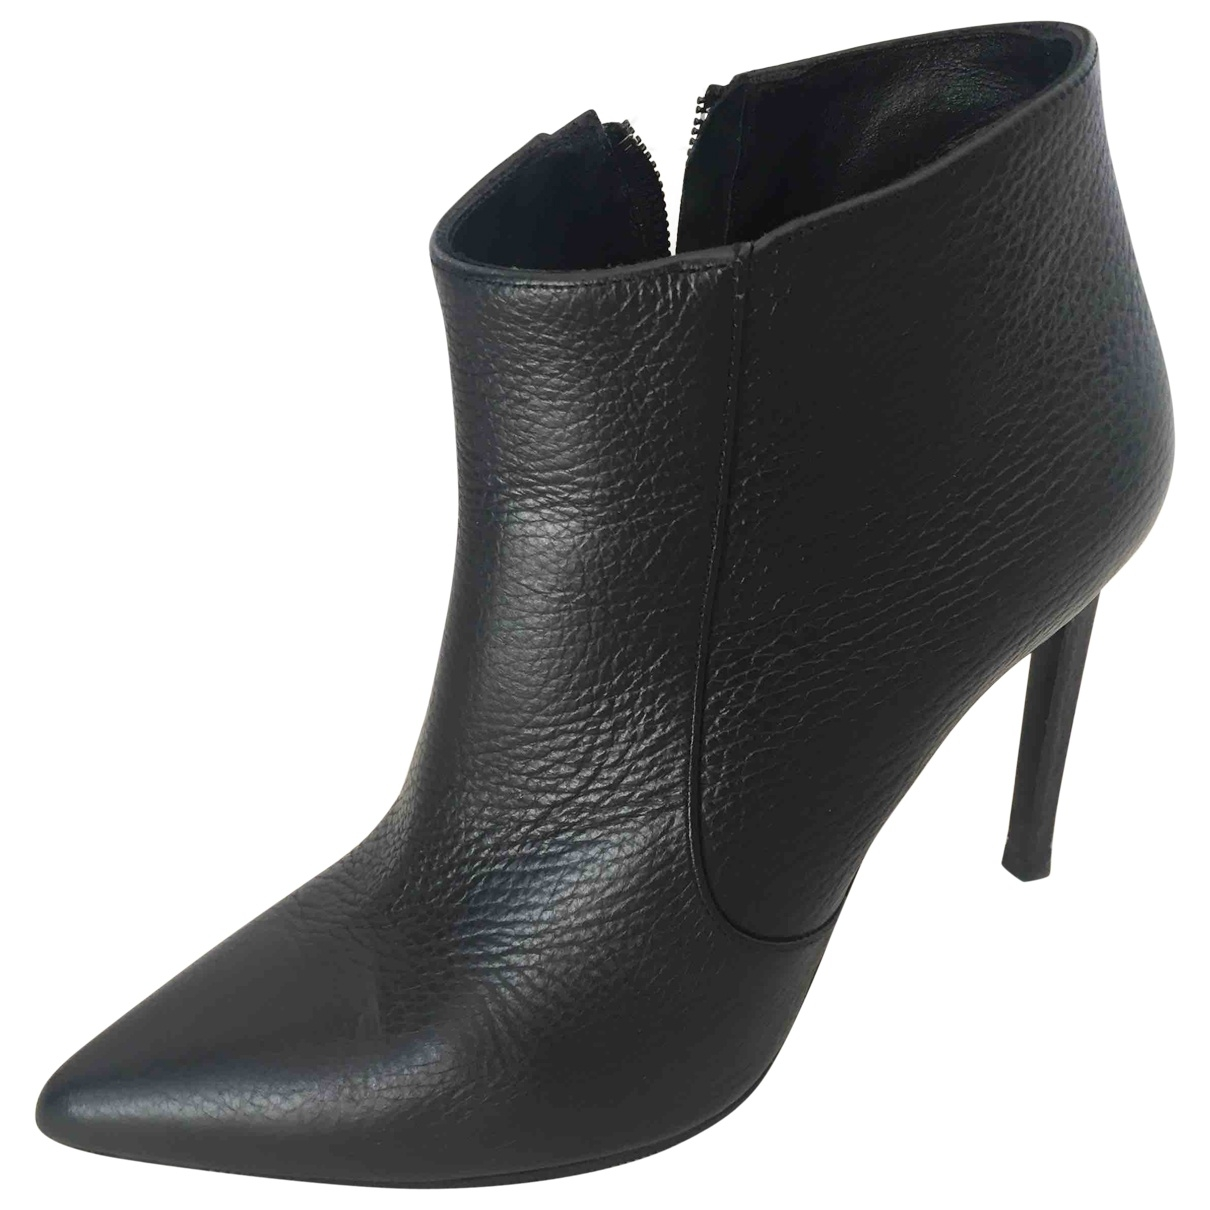 Pollini \N Black Leather Ankle boots for Women 38.5 EU